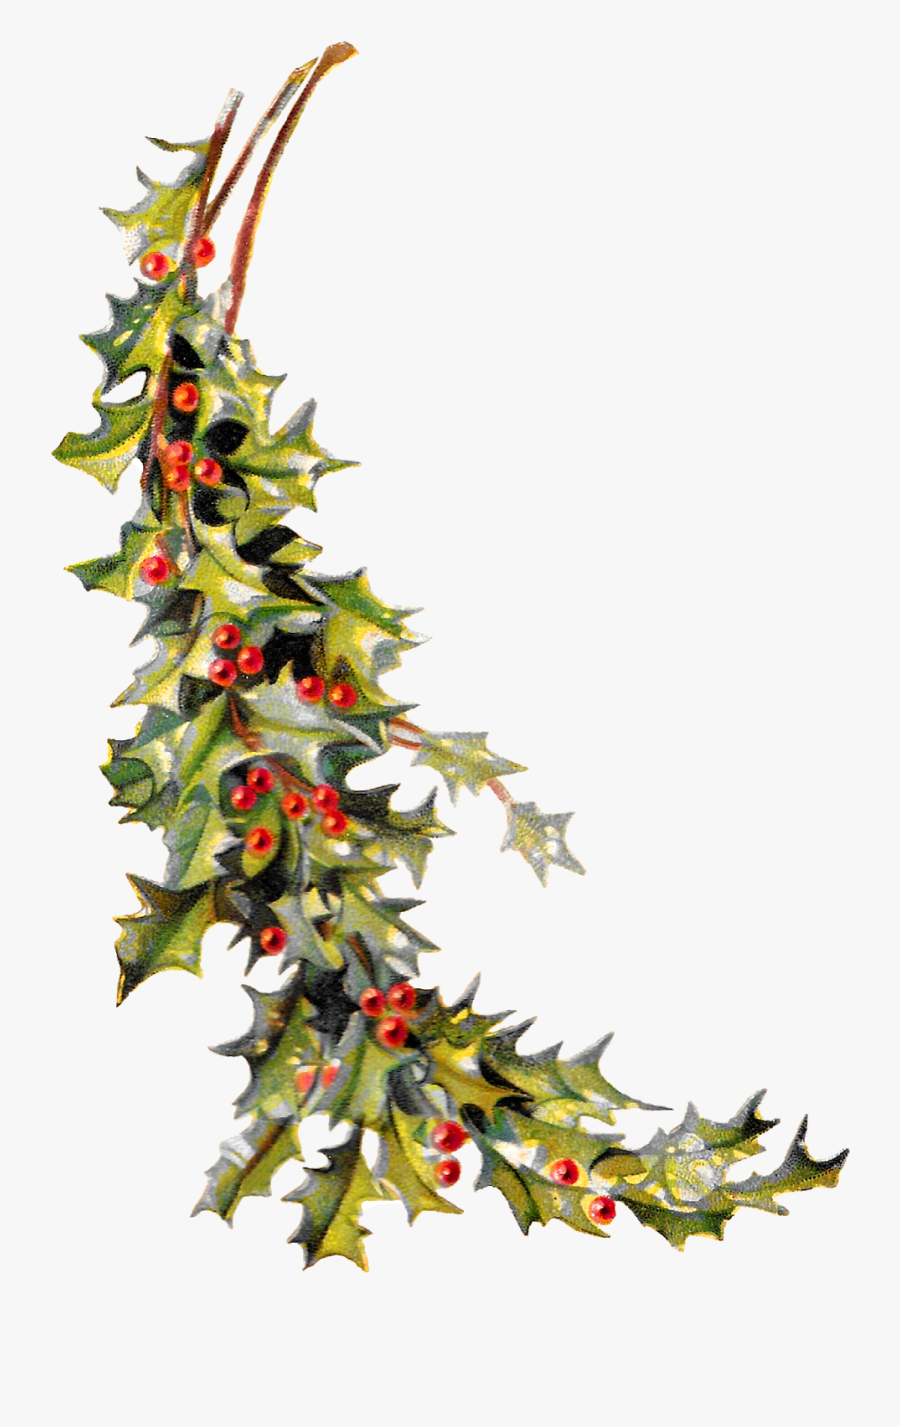 Free Christmas Clipart Holly - Free Vintage Christmas Holly Border Clipart, Transparent Clipart